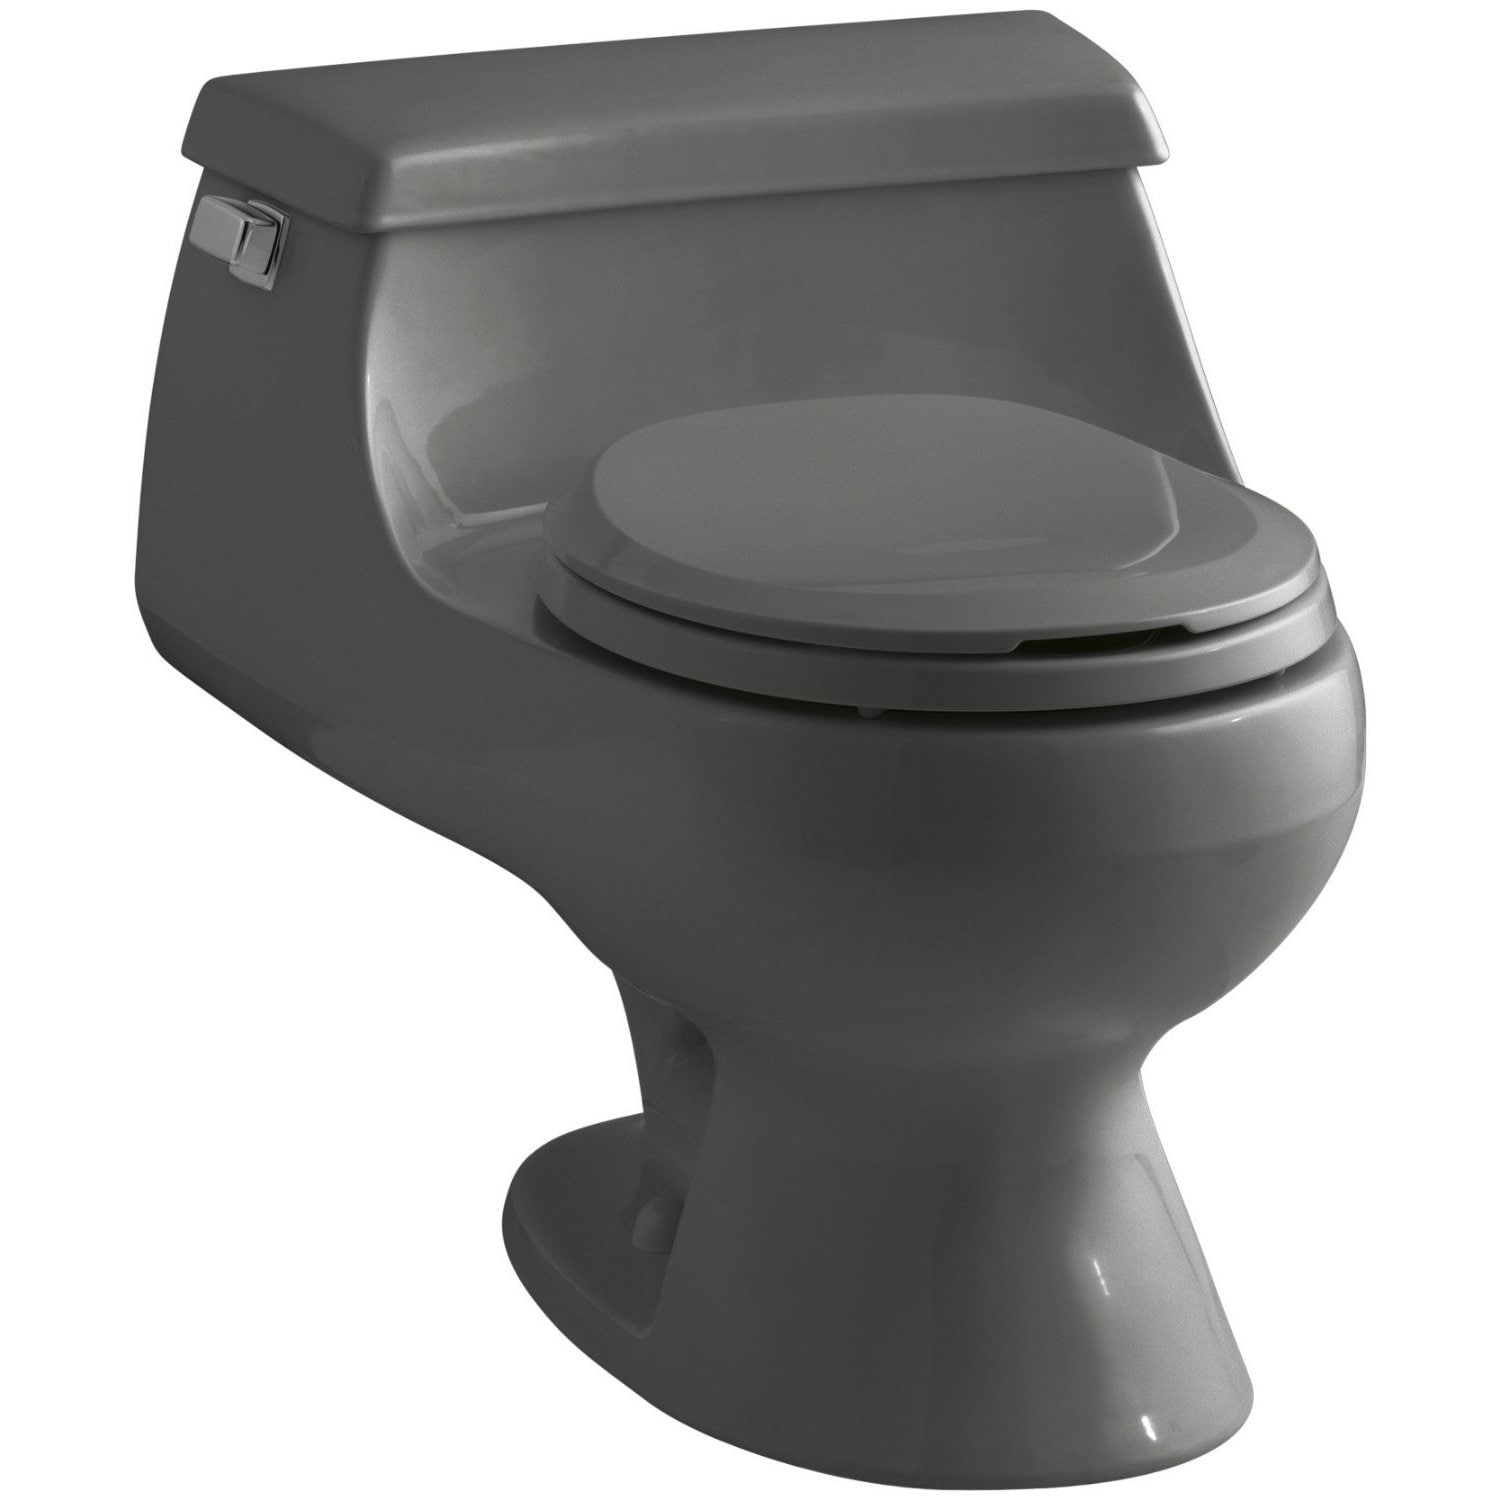 Fine Kohler Rialto French Curve Seat Thunder Grey Toilet Uwap Interior Chair Design Uwaporg